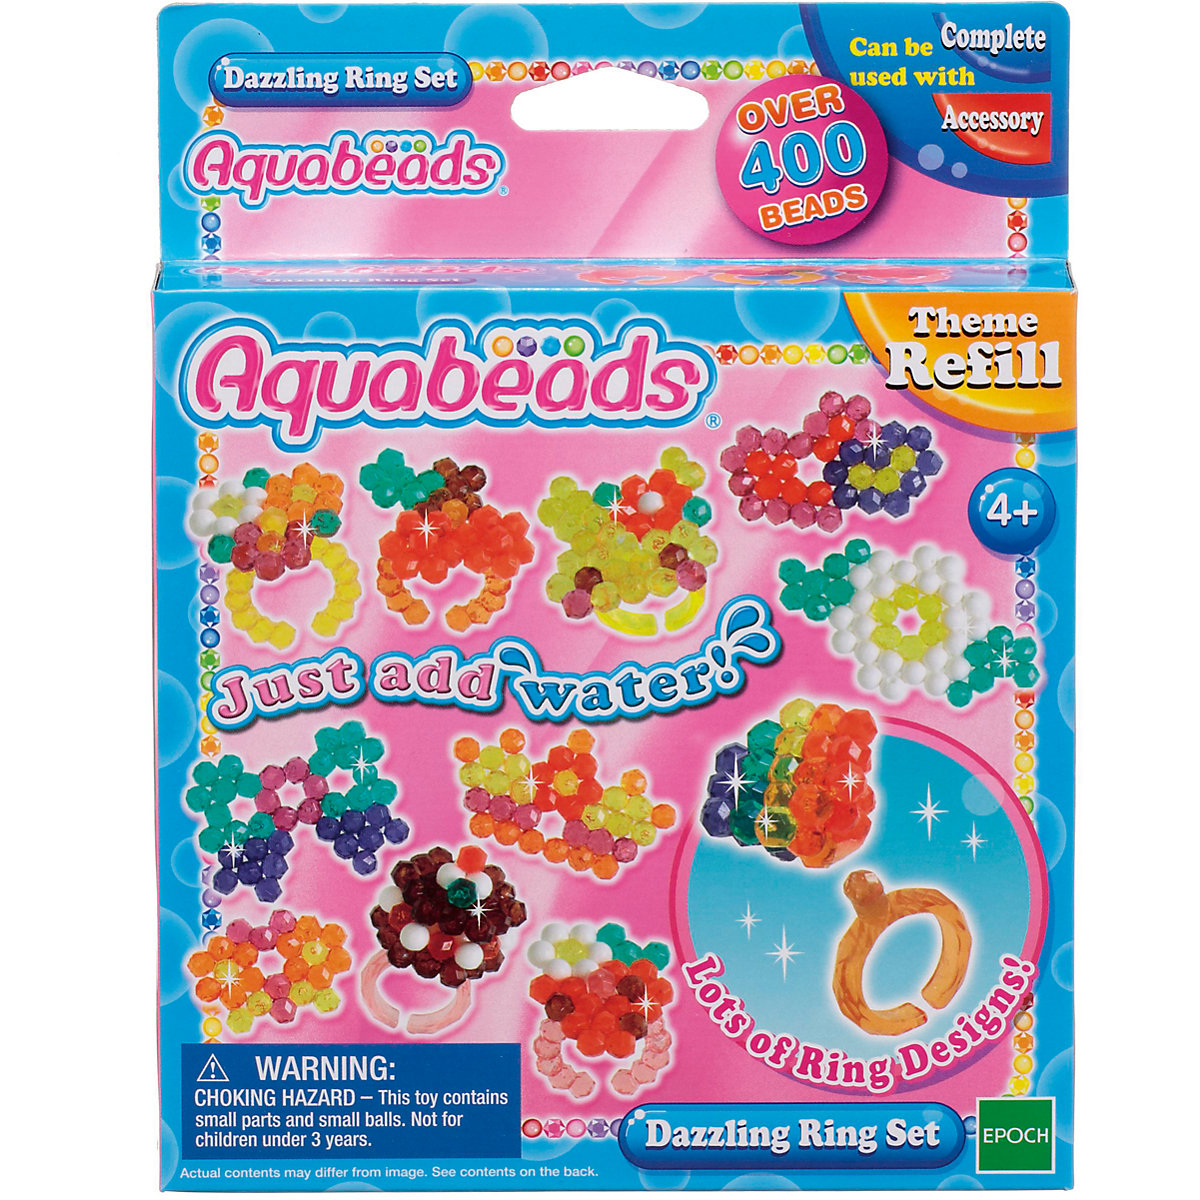 Aquabeads Beads Toys 7240122 Creativity Needlework For Children Set Kids Toy Hobbis Arts Crafts DIY